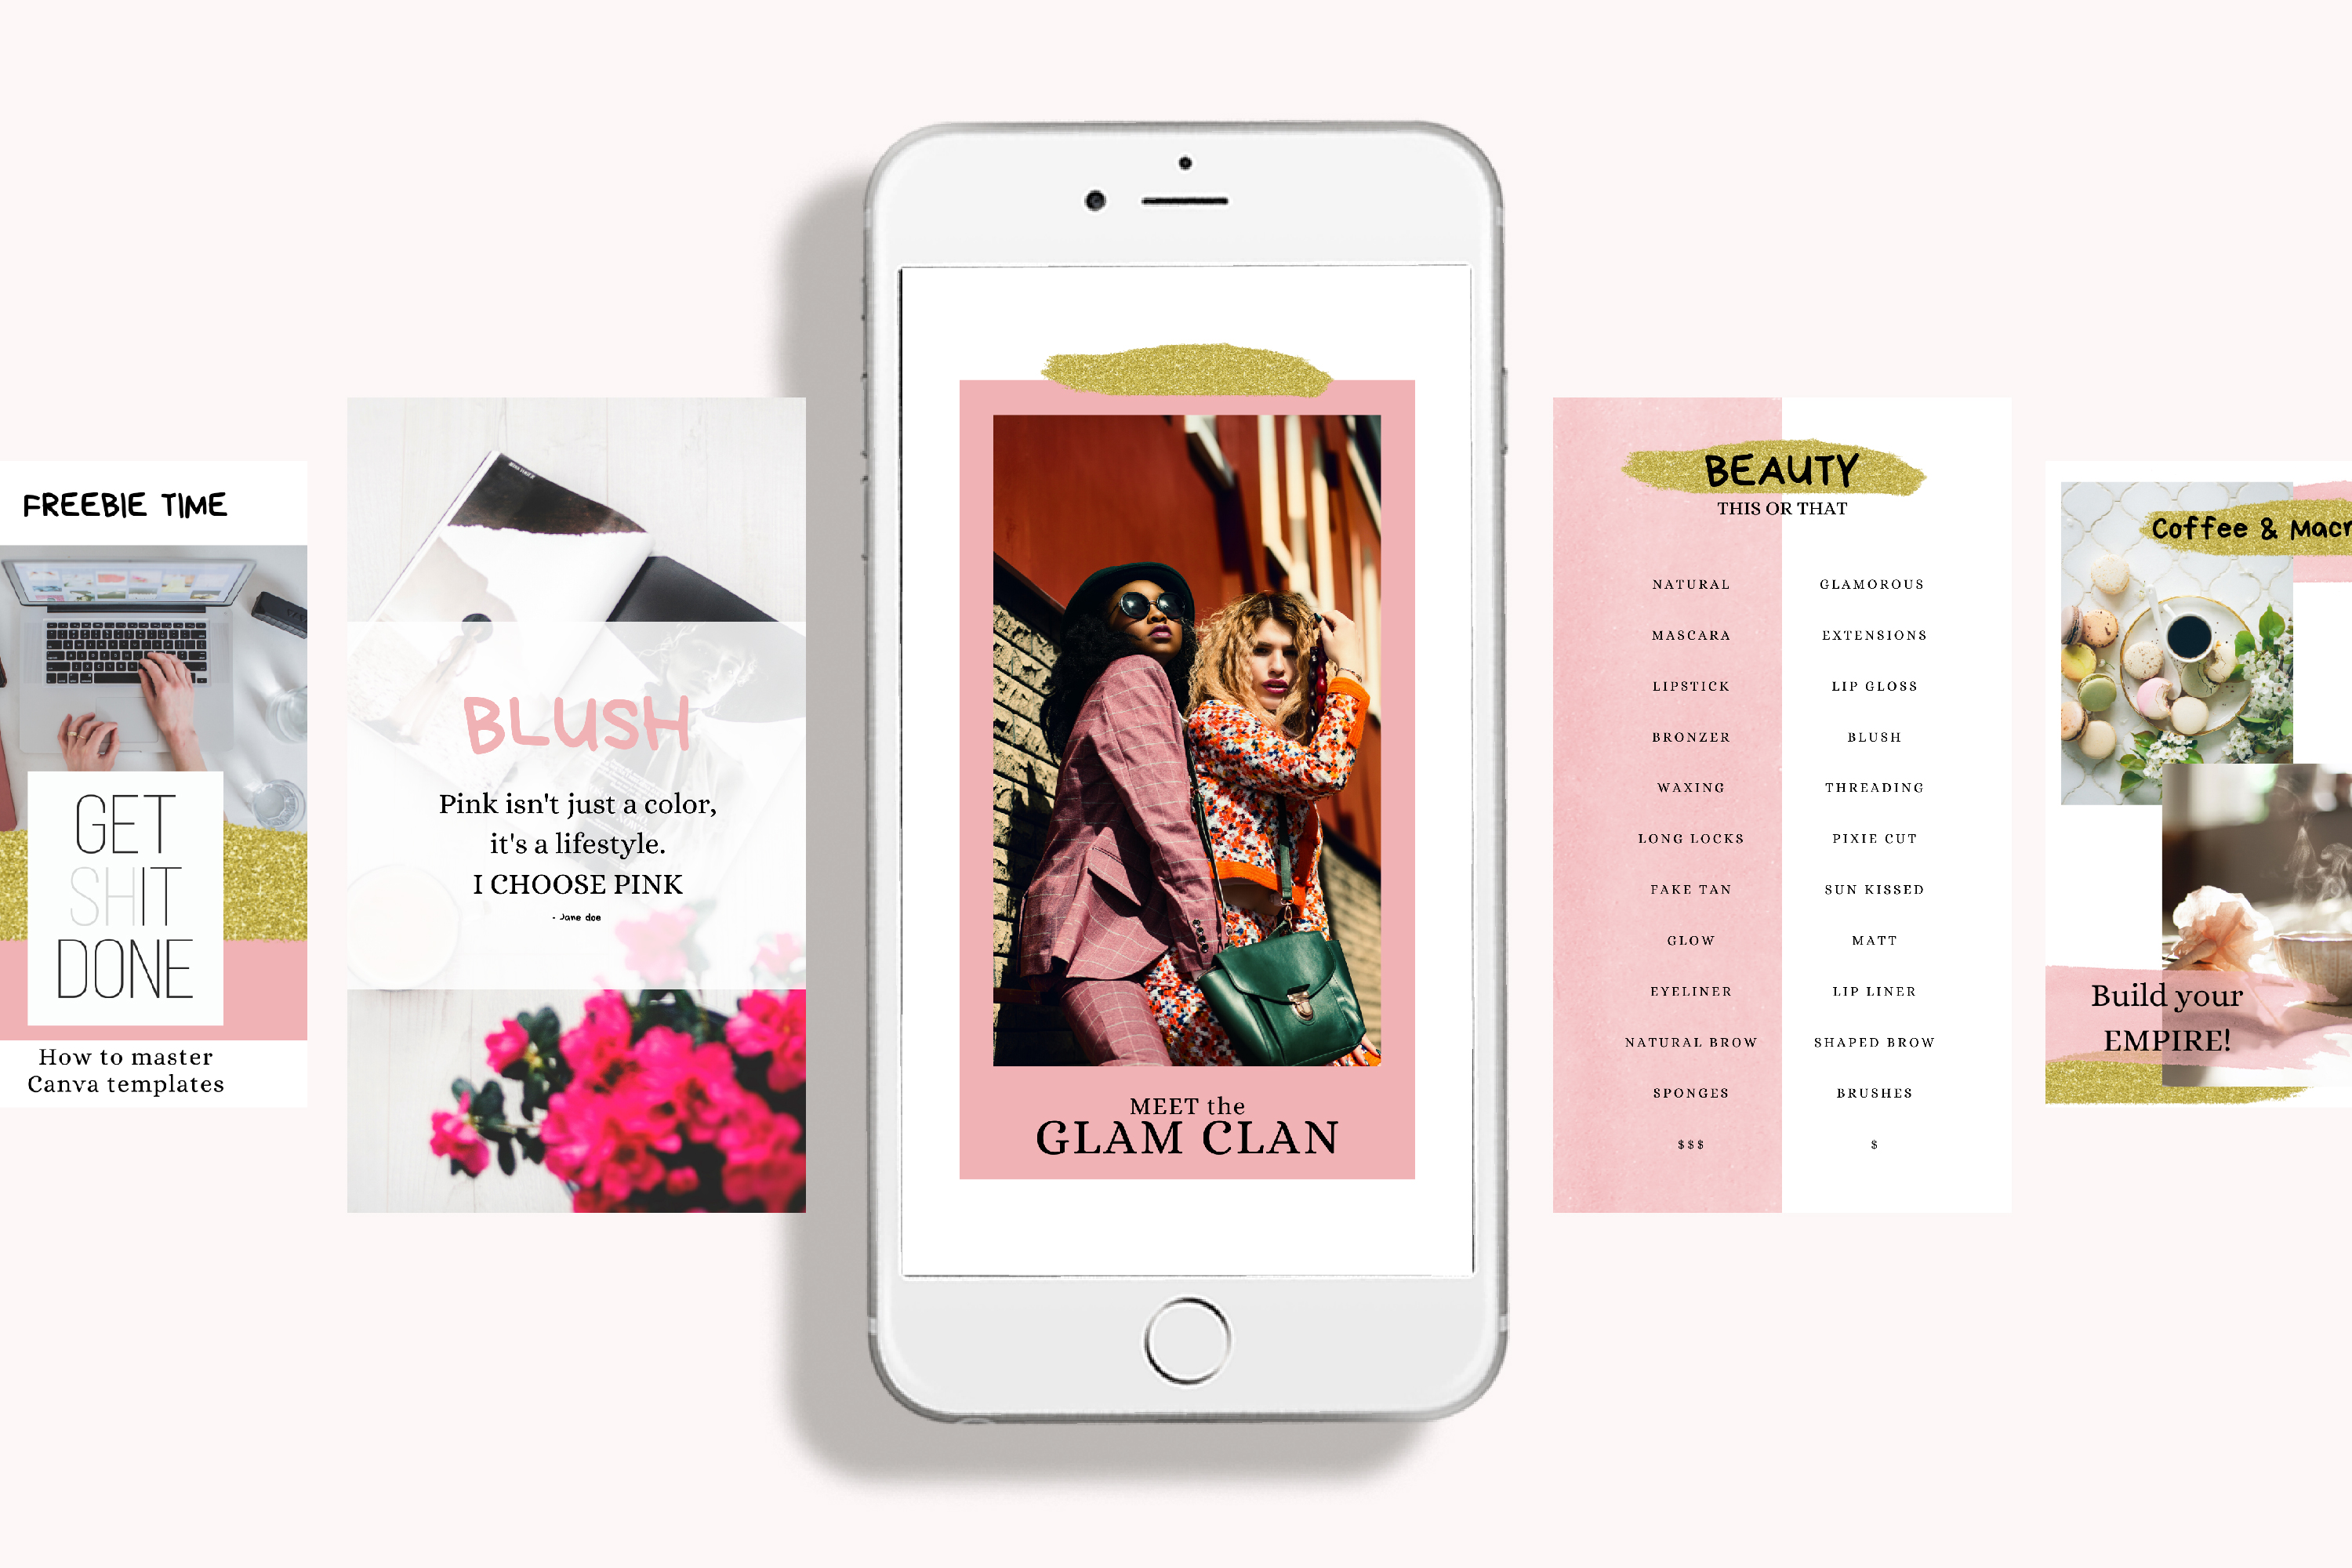 Instagram Story Canva Template - Blush example image 2